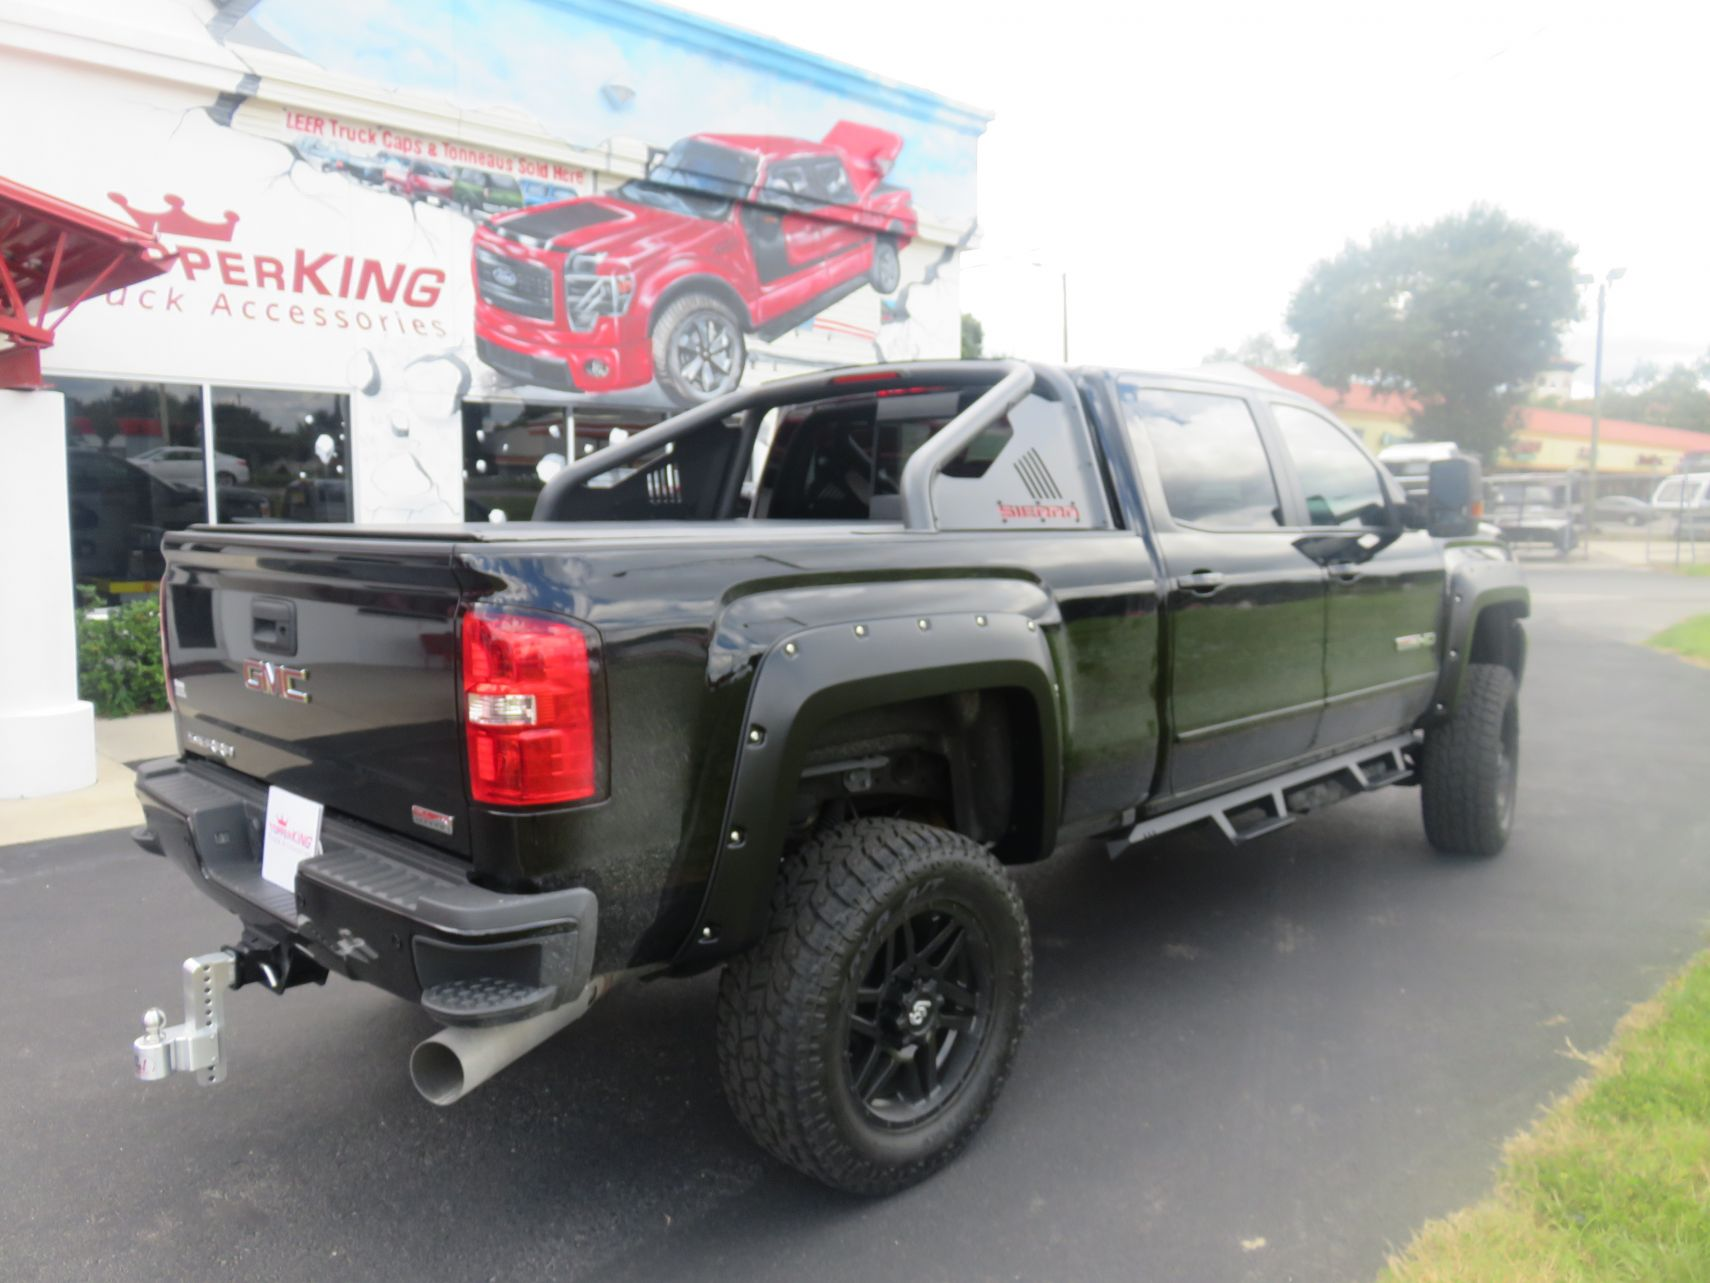 2019 GMC Sierra with Truxedo, Nerf Bars, Fender Flares, and hitch by TopperKING in Brandon, FL 813-689-2449 or Clearwater, FL 727-530-9066. Call today!